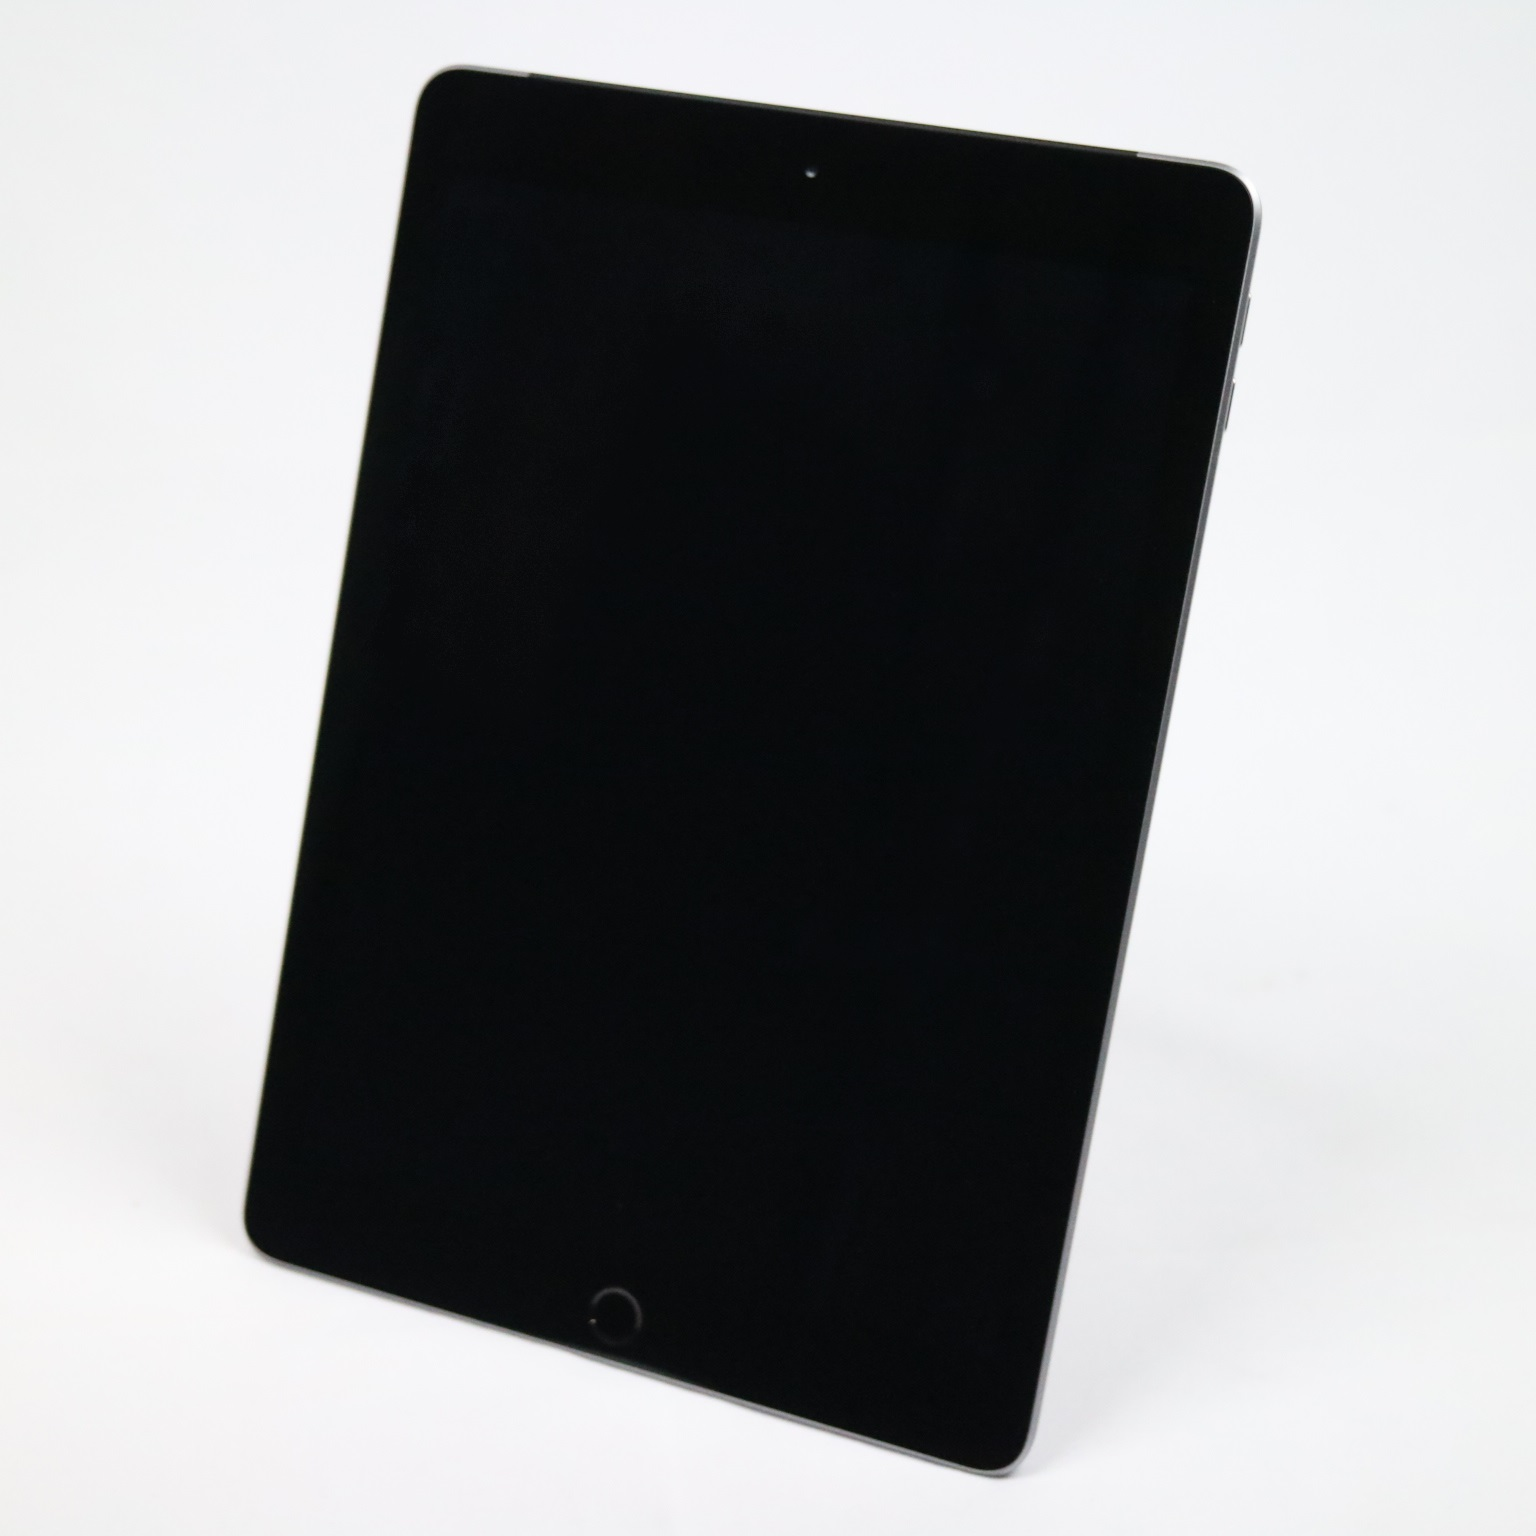 iPad 5 Wi-Fi+Cellular(au) (MP1J2J/A) / 32GB/ 9.7インチ/ スペースグレイ